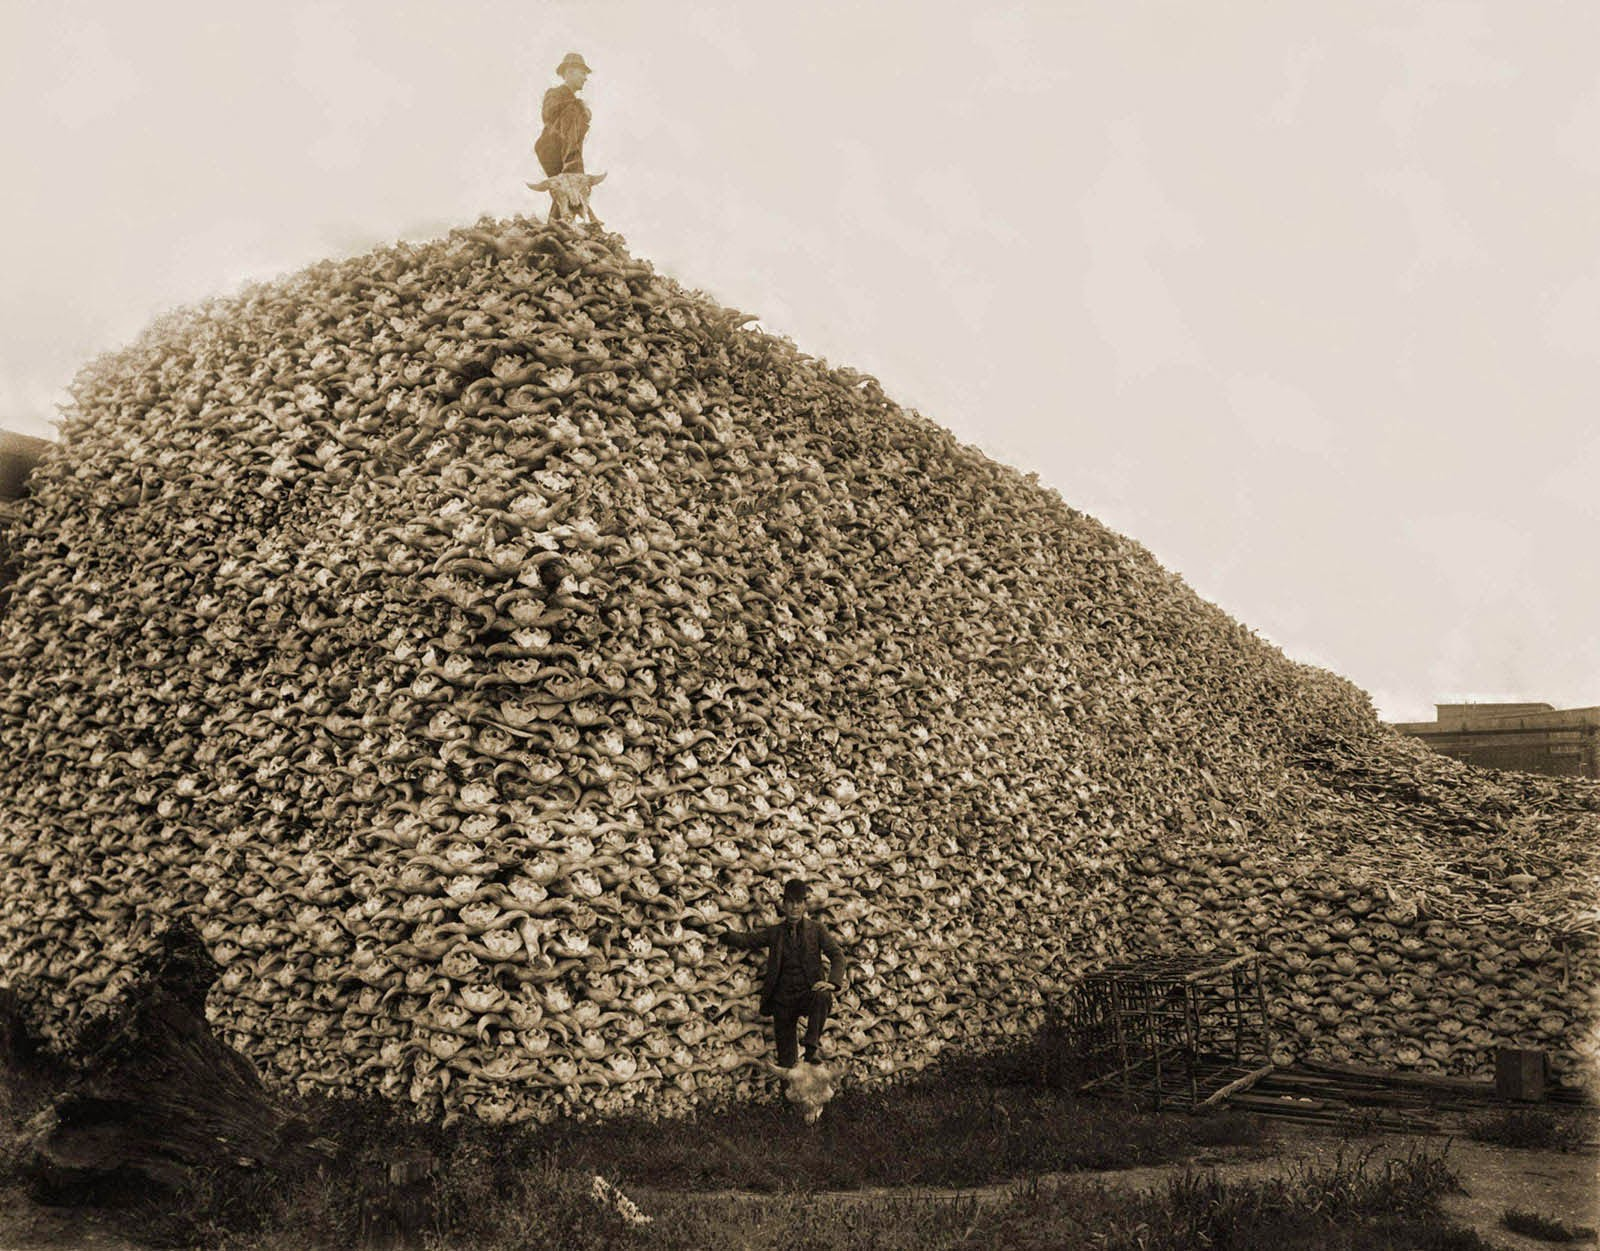 Bison were hunted for their skins, with the rest of the animal left behind to decay on the ground.